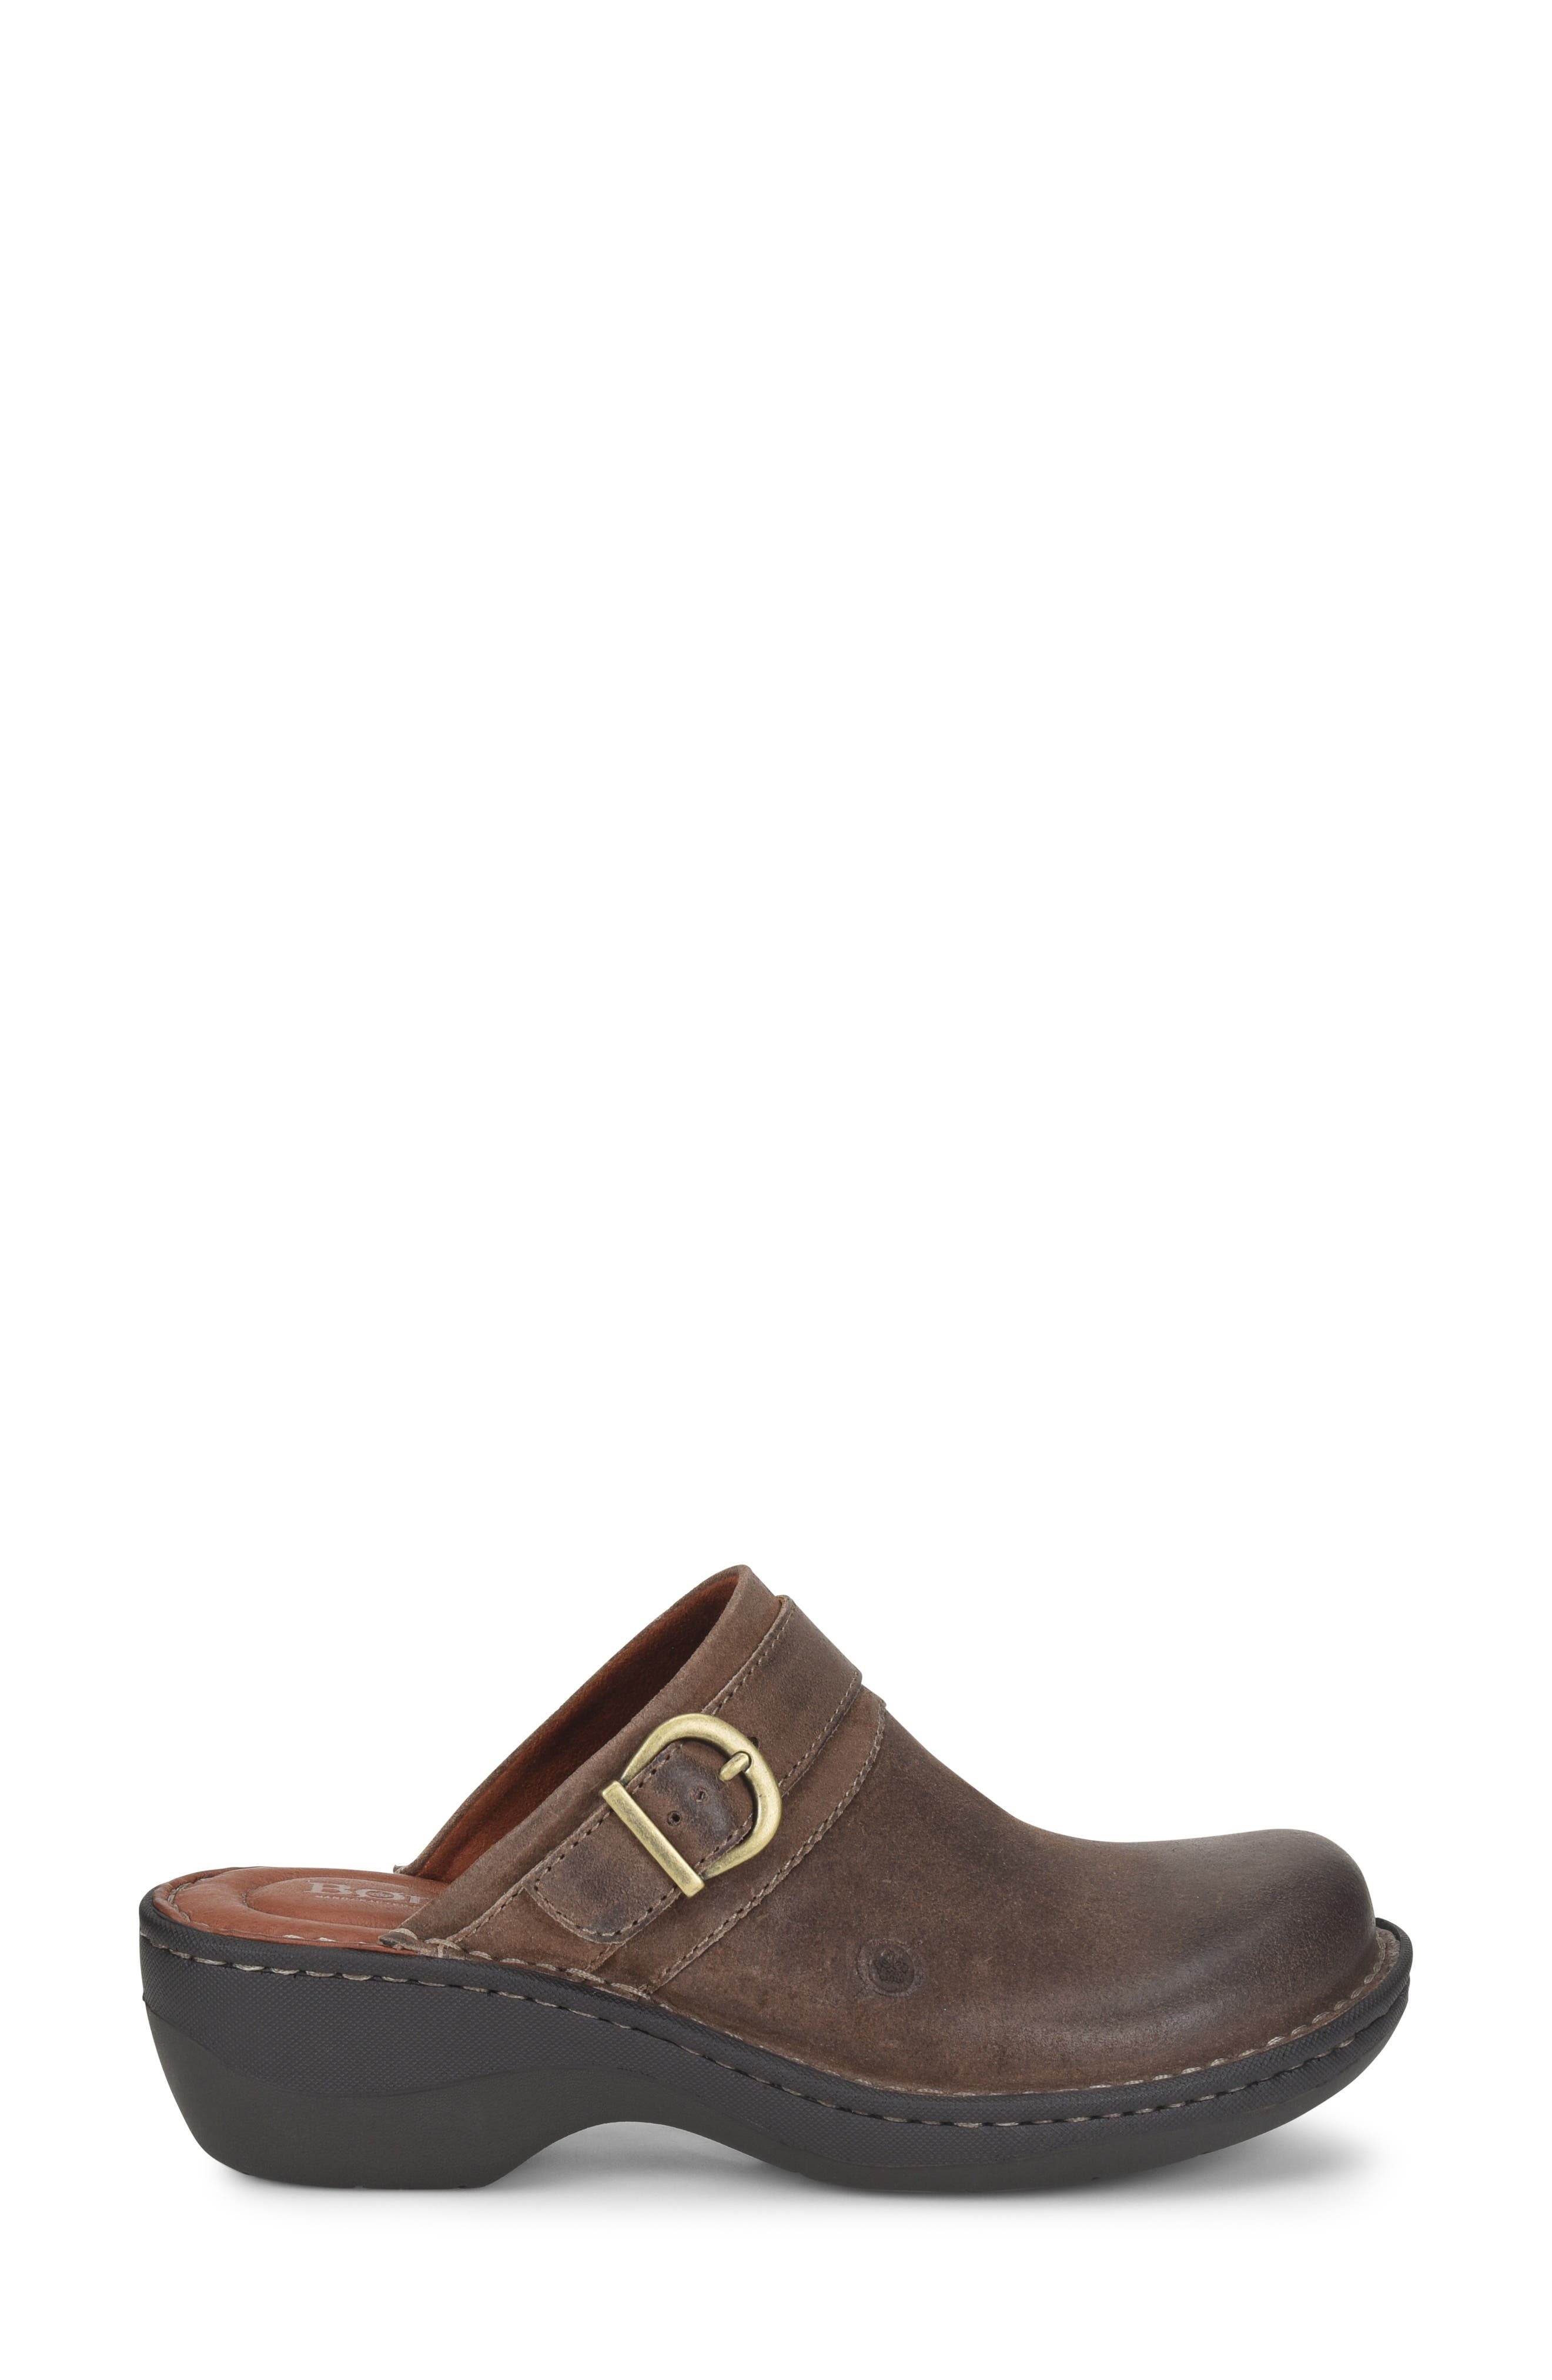 BØRN,                             Avoca Clog,                             Alternate thumbnail 3, color,                             TAUPE DISTRESSED LEATHER